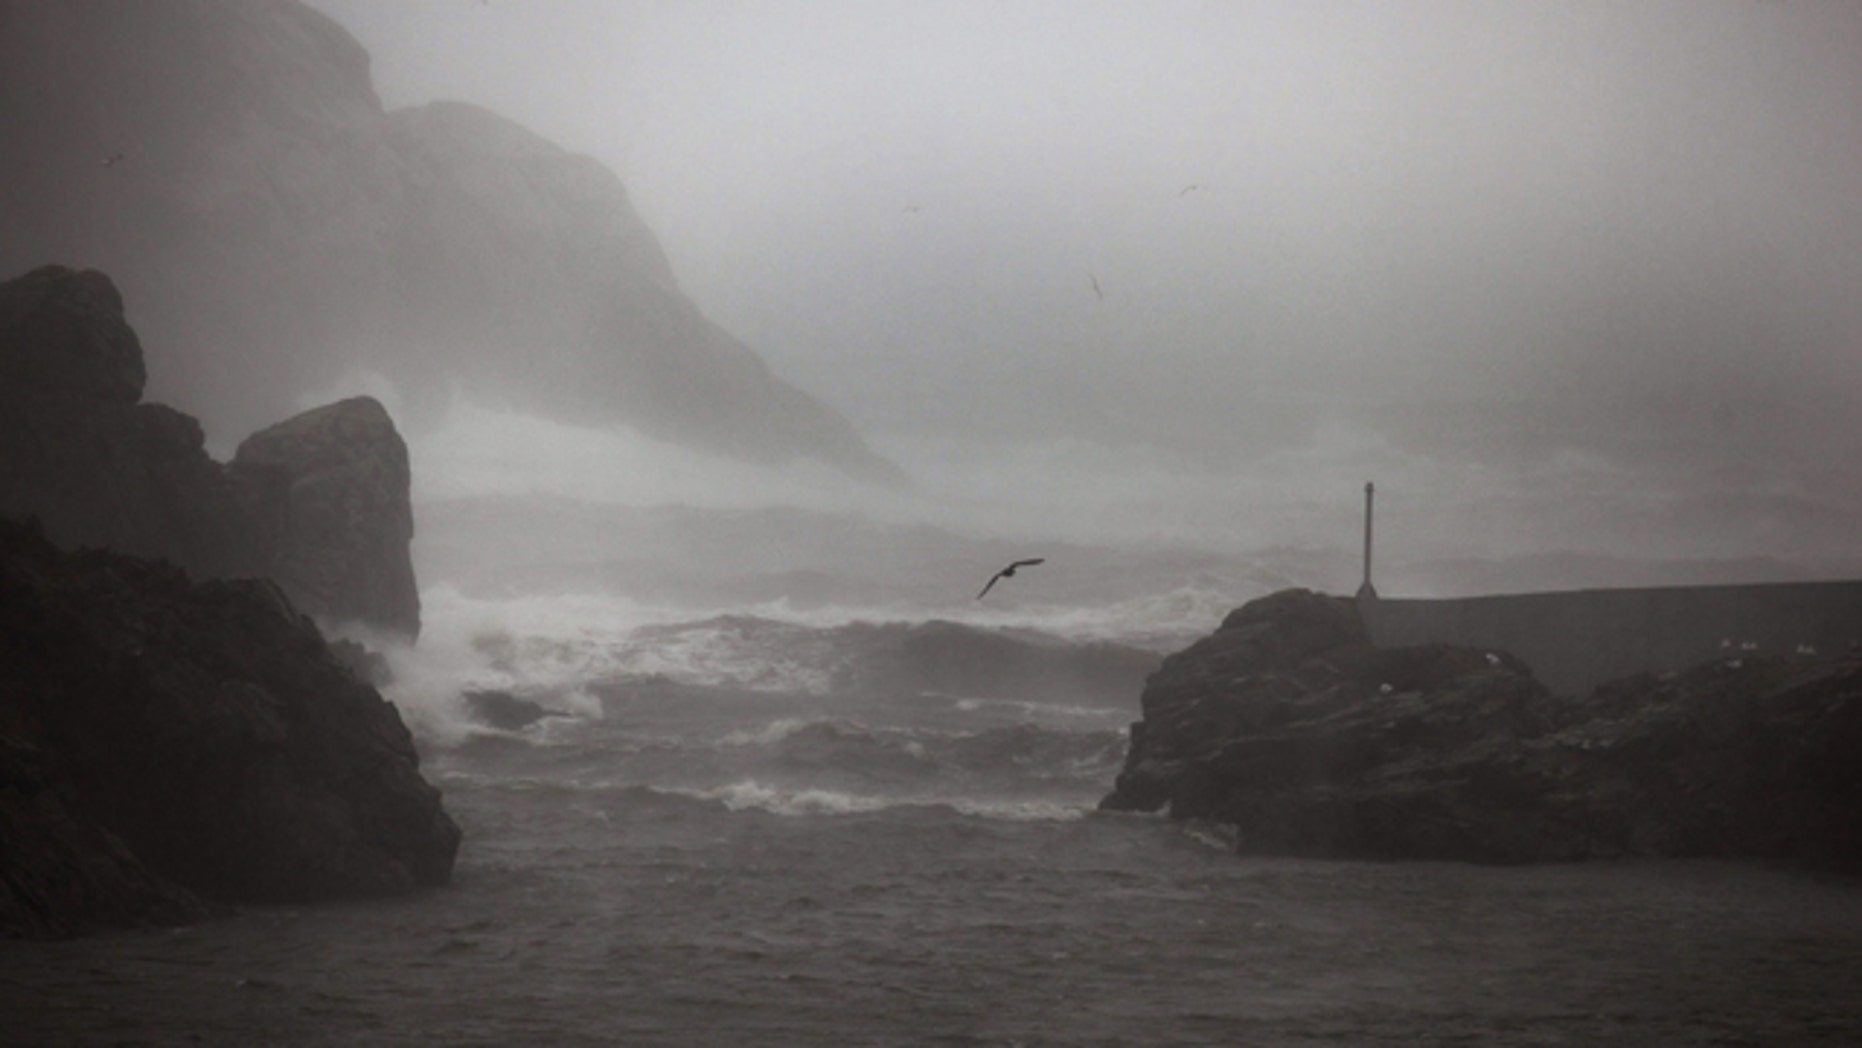 September 21: Large waves crash at Quidi Vidi Gut, an historic fishing community within St. John's, Canada as Hurricane Igor hit. Hurricane Igor caused widespread damage across an eastern swath of Newfoundland on Tuesday as heavy rains flooded communities, washed out roads and stranded some residents in their homes. (AP)